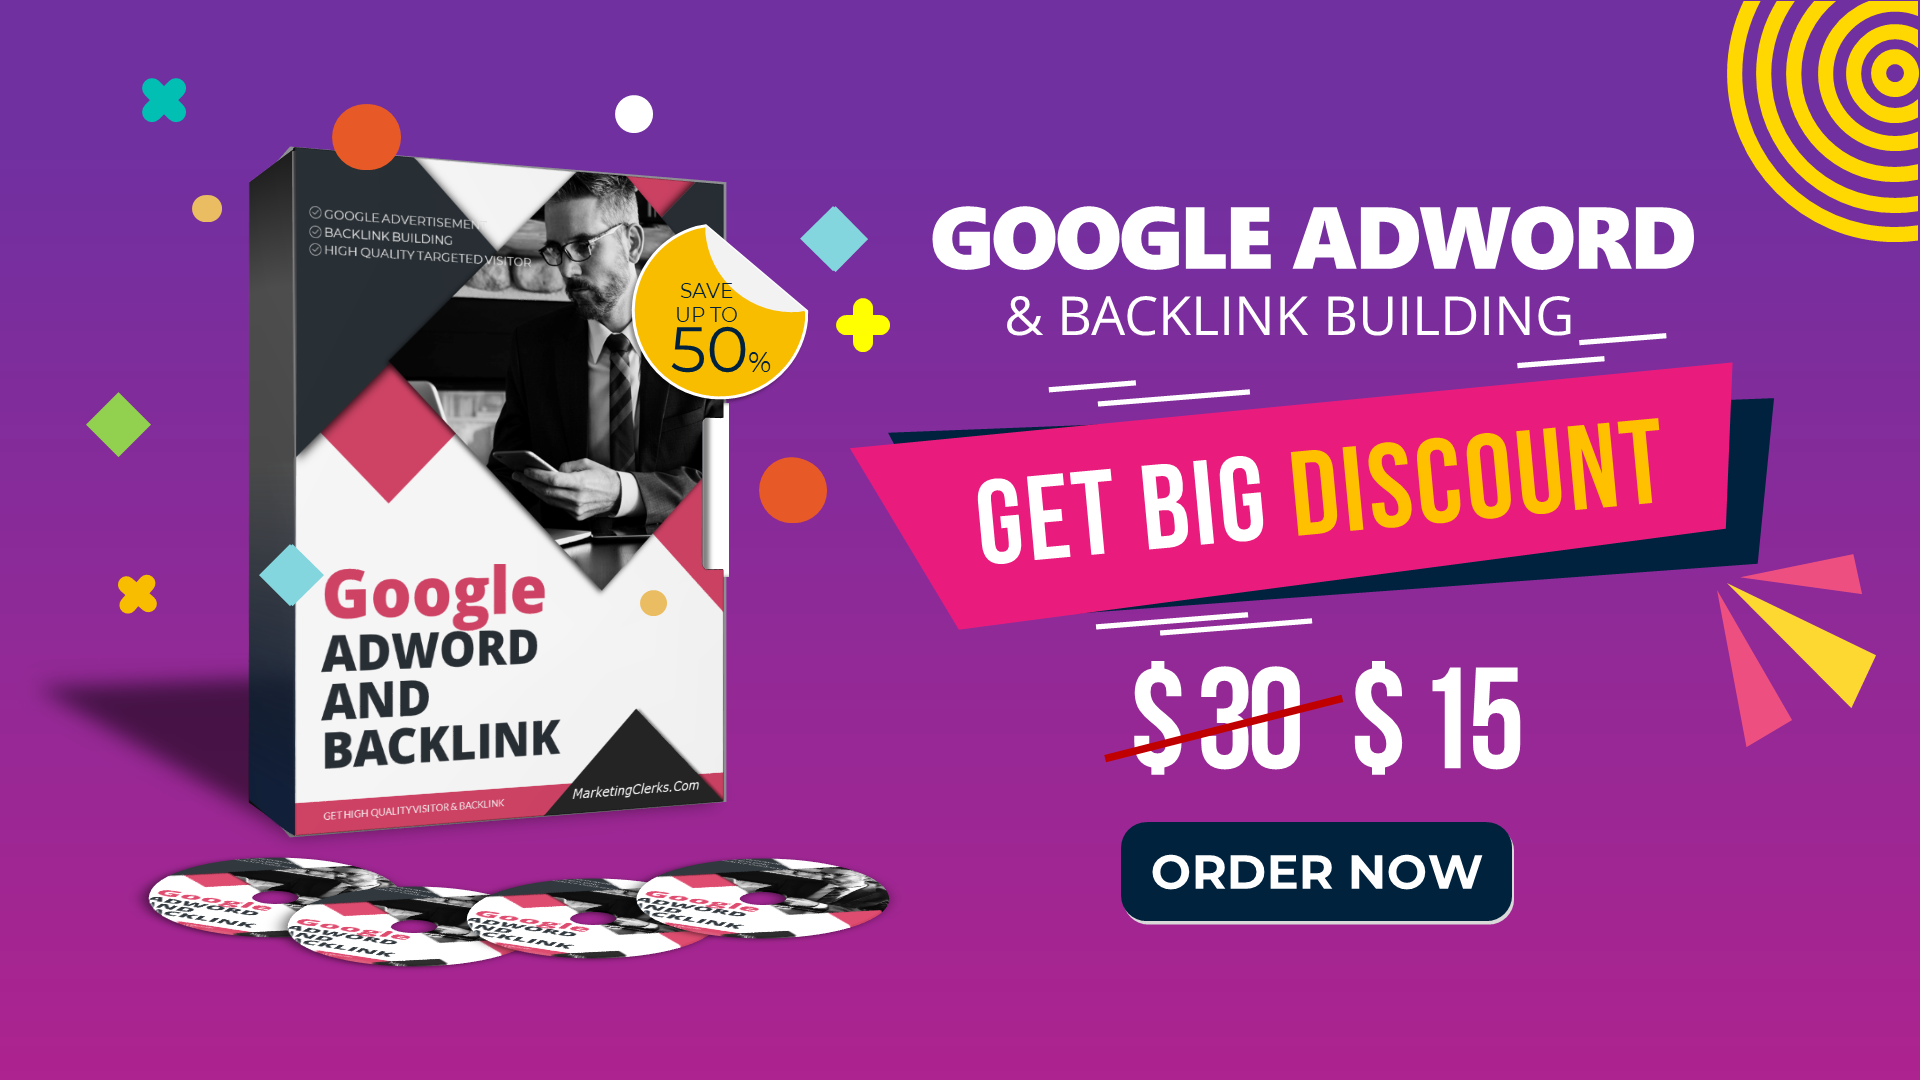 We will Advertise Your Website Using Google Ads + Backlink Building - Full Report